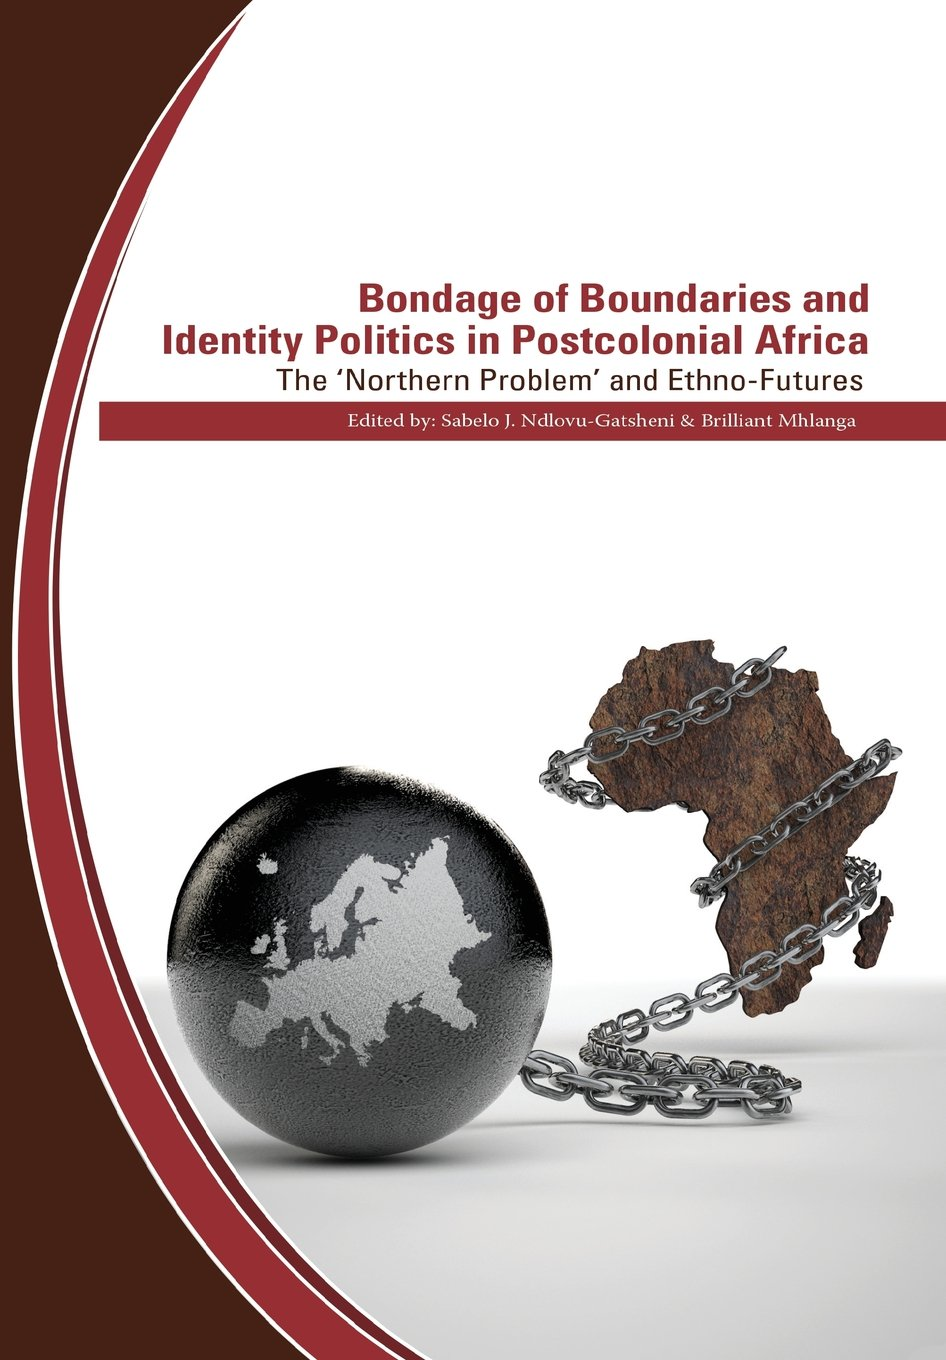 Bondage of Boundaries and Identity Politics in Postcolonial Africa. the 'Northern Problem' and Ethno-Futures pdf epub